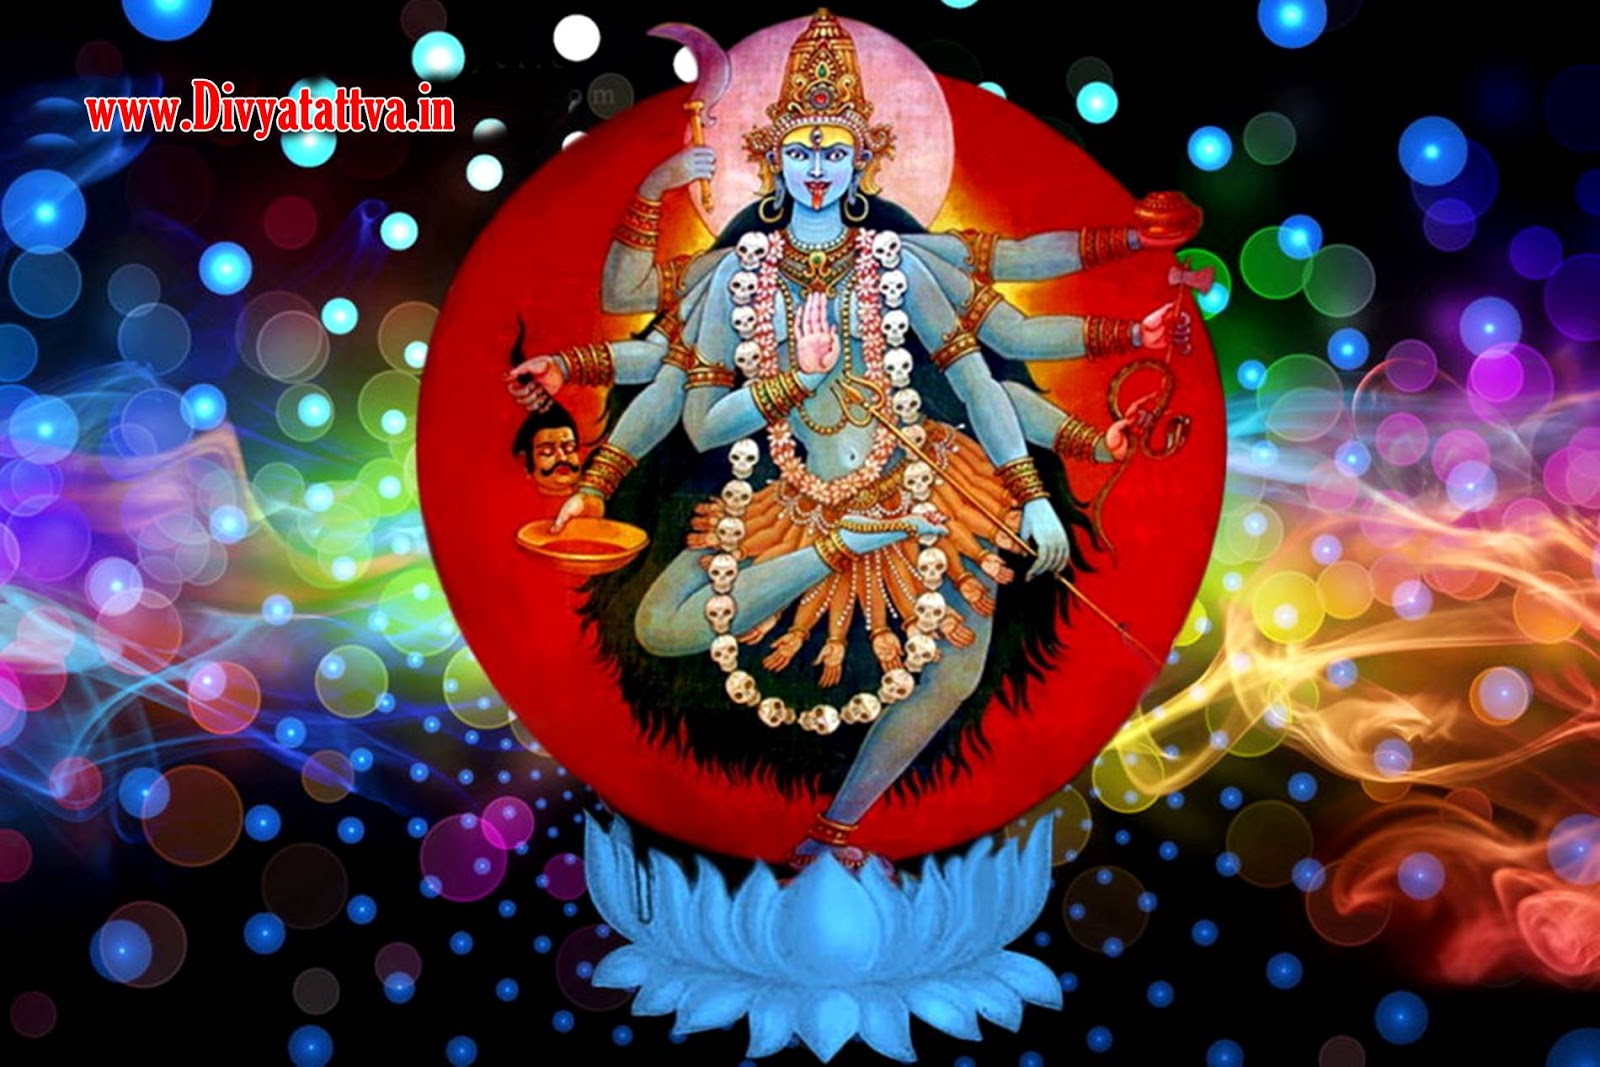 Download Wallpaper Lord Kali - Images-of-Maa-Kali-hd-wallpaper-background-www  Perfect Image Reference_591329.jpg